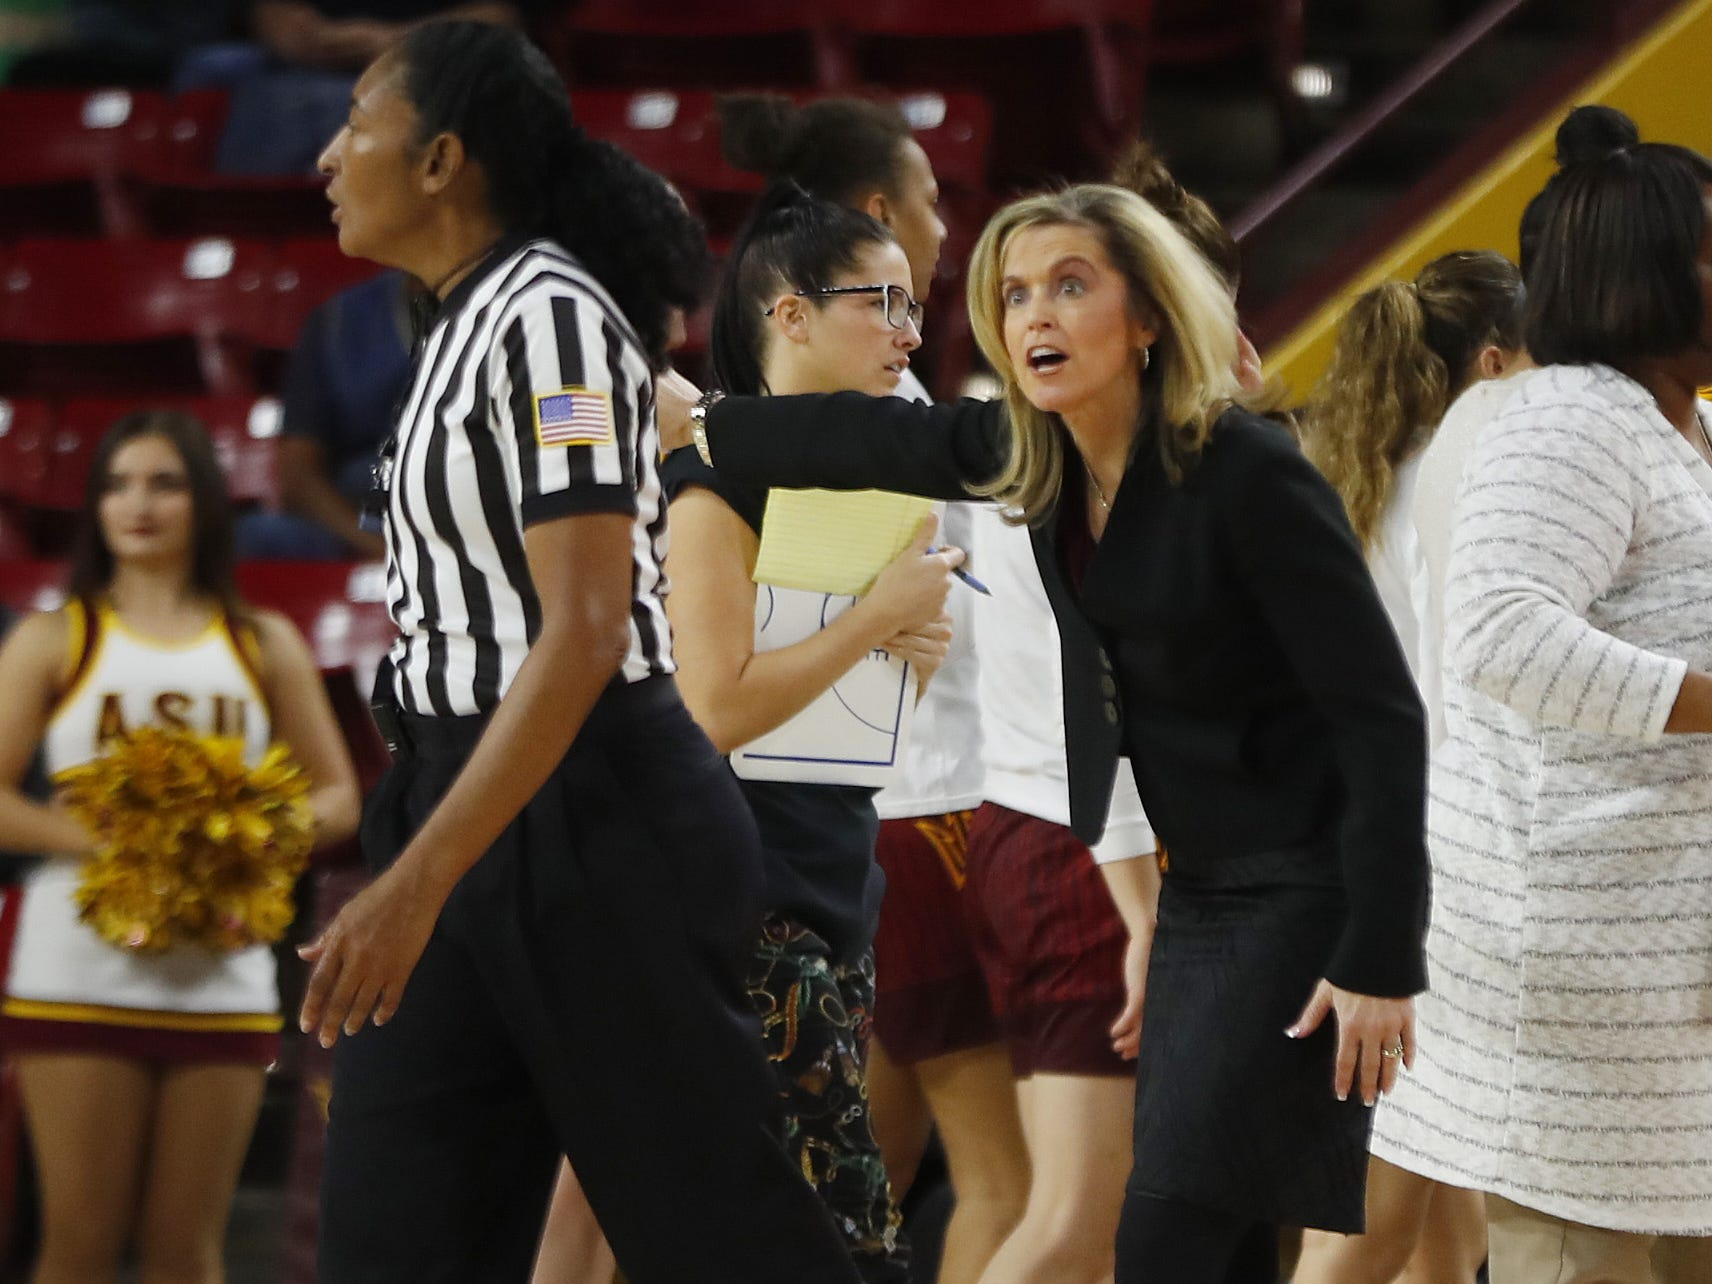 ASU's head coach Charli Turner Thorne questions officials after a no-call during the first half against Utah at Wells Fargo Arena in Tempe, Ariz. on February 17, 2019.